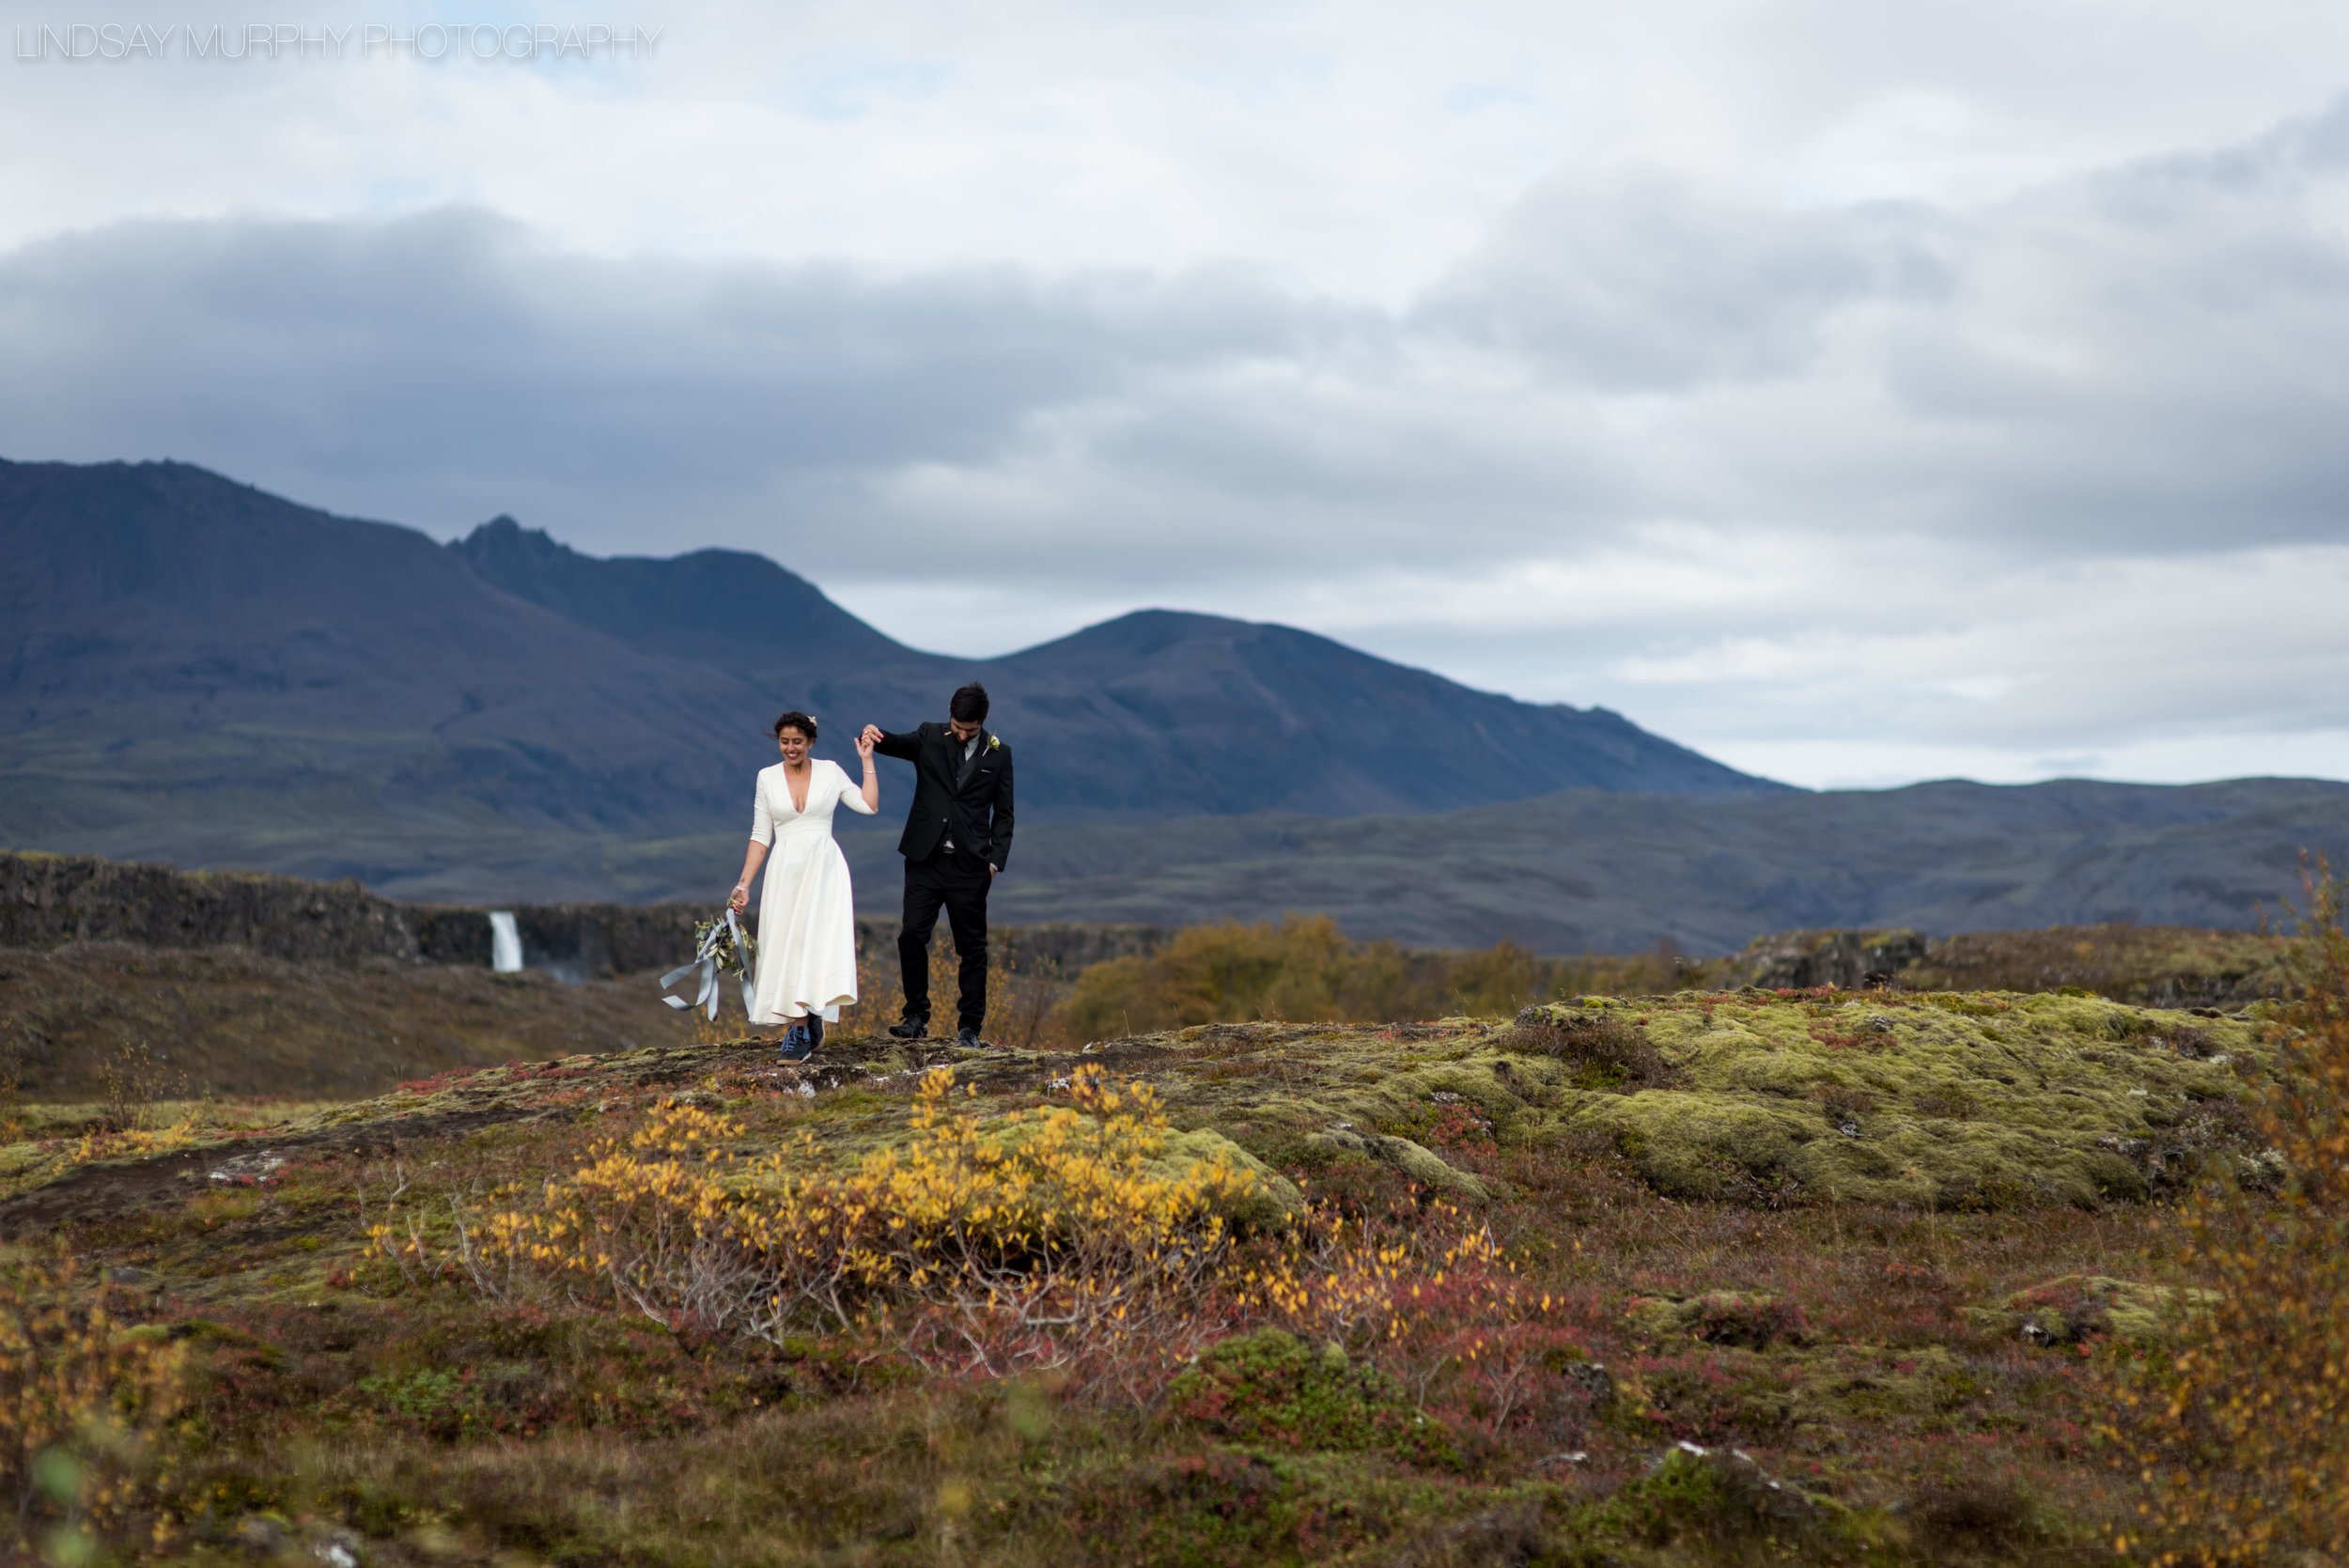 Destination_Iceland_Adventure_Wedding-394.jpg